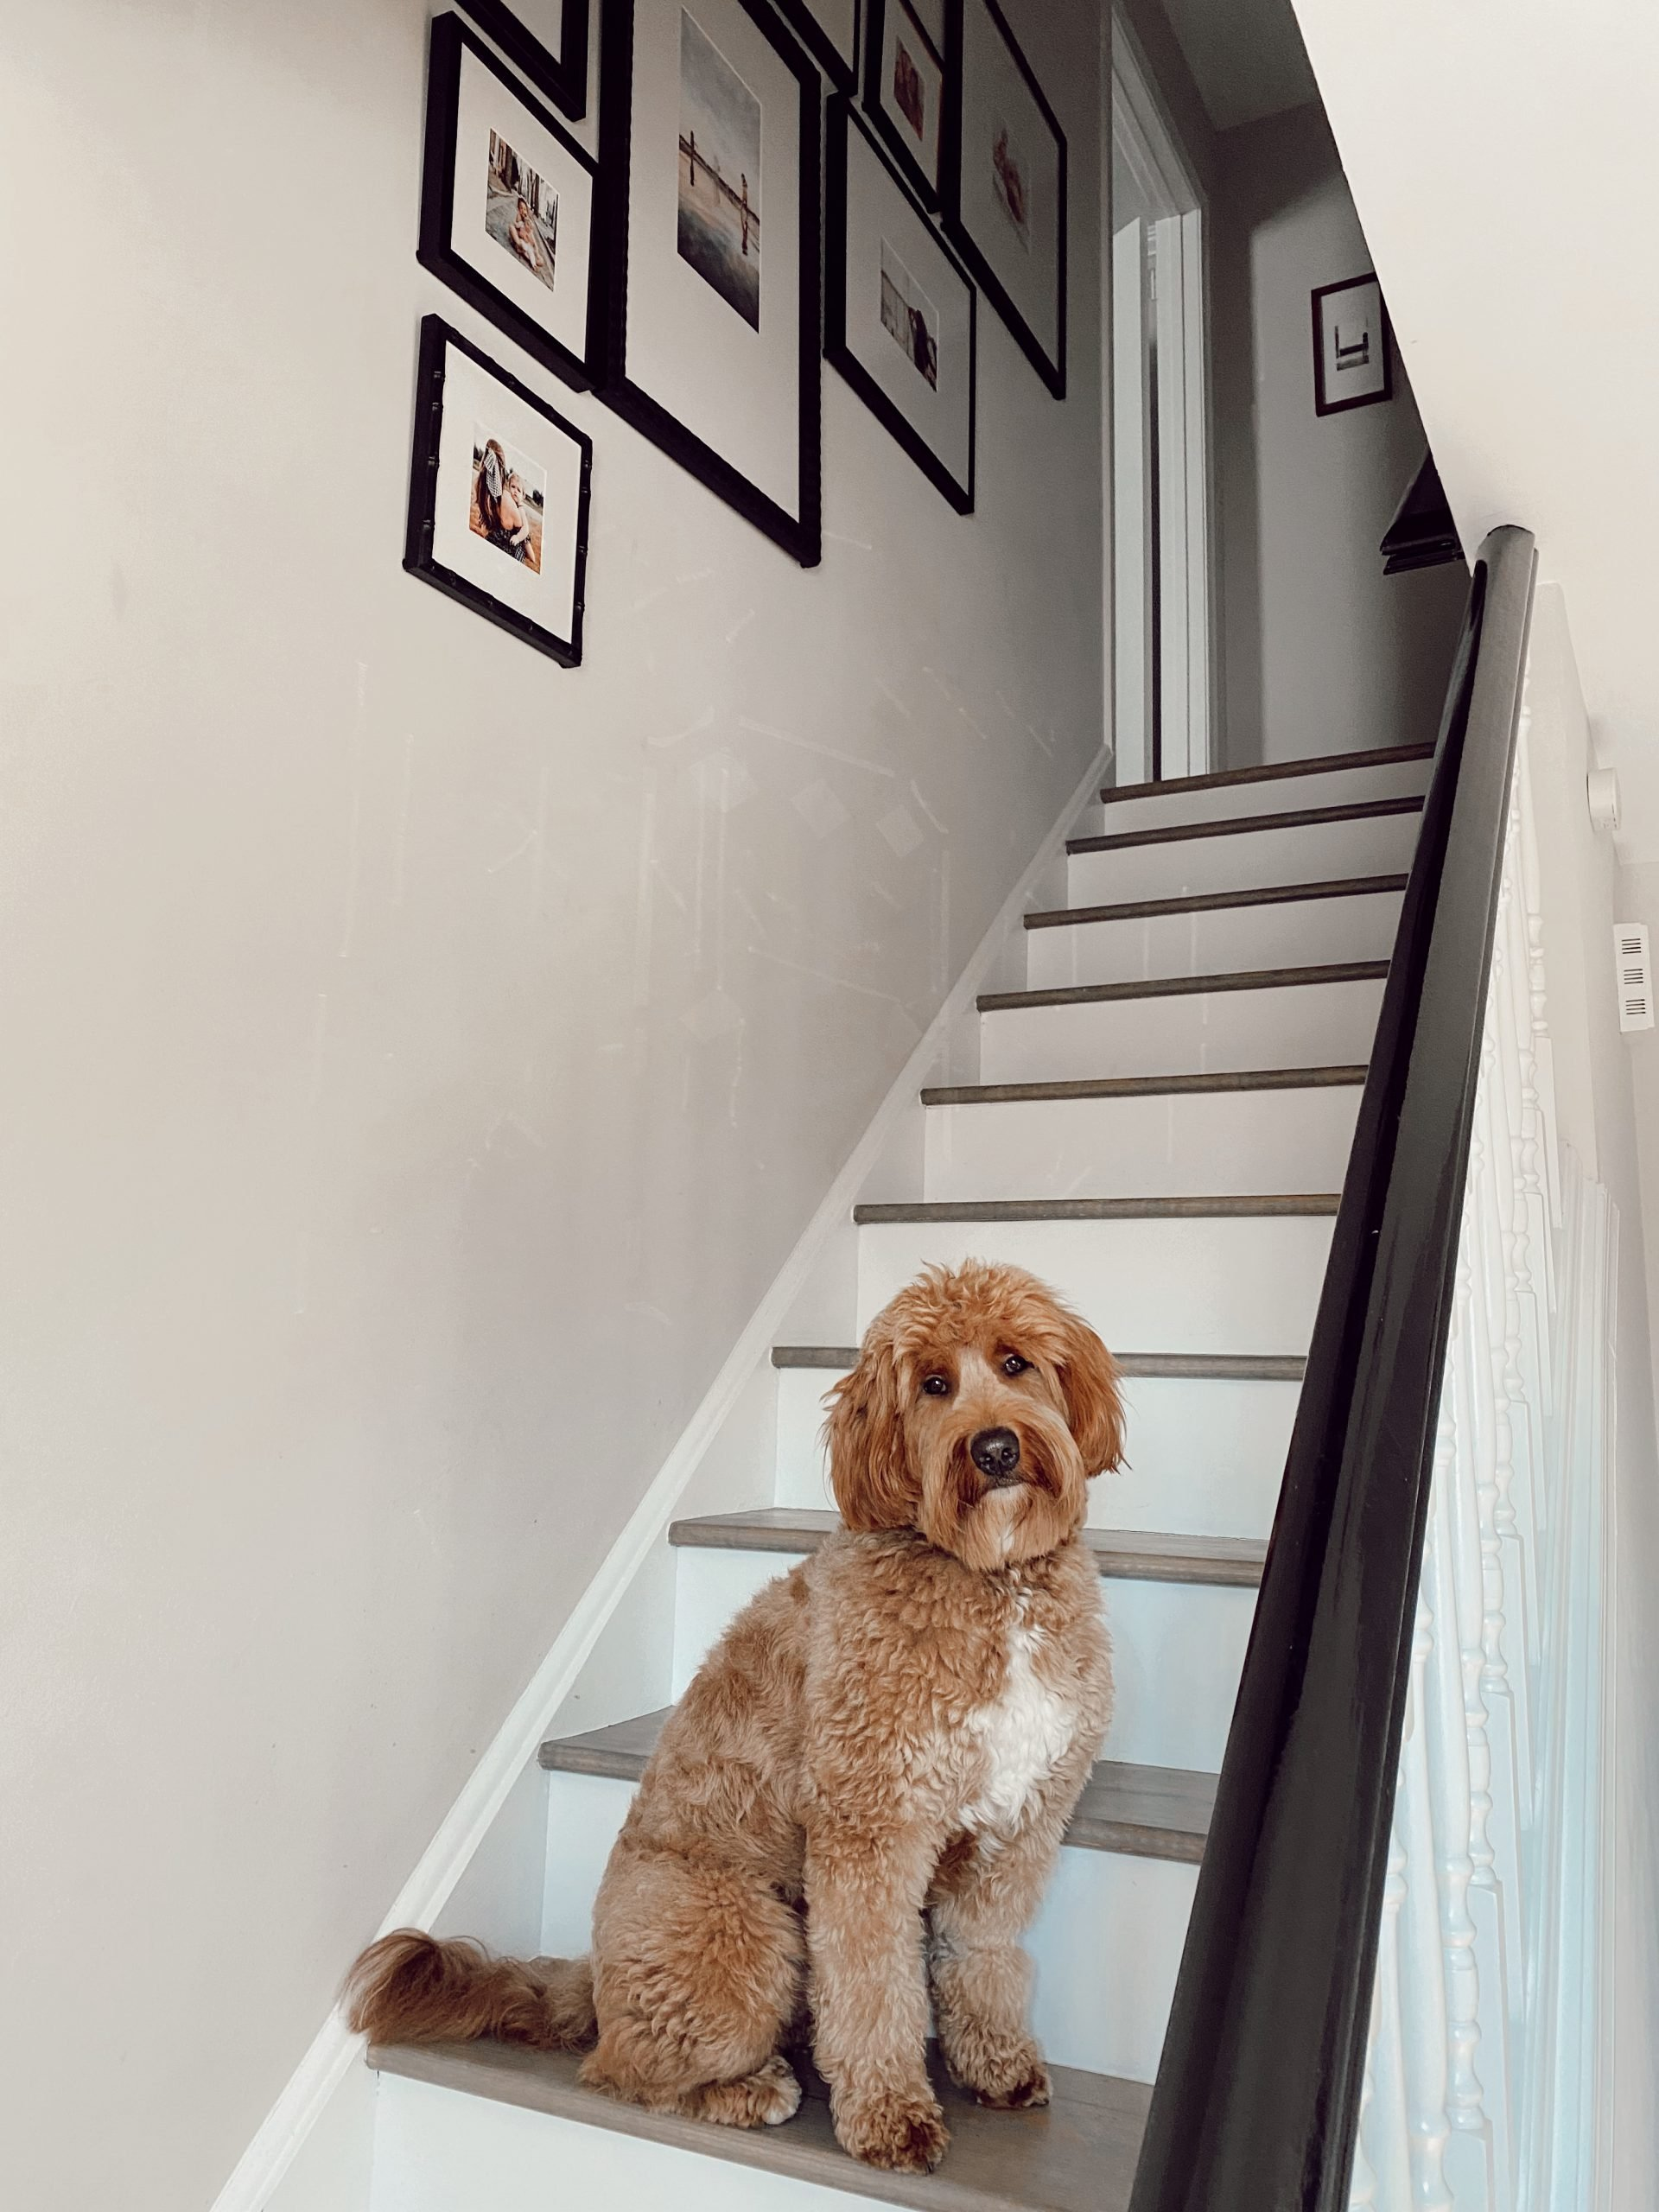 a goldendoodle dog sitting on a staircase in front of a gallery wall hung on the wall of black frames